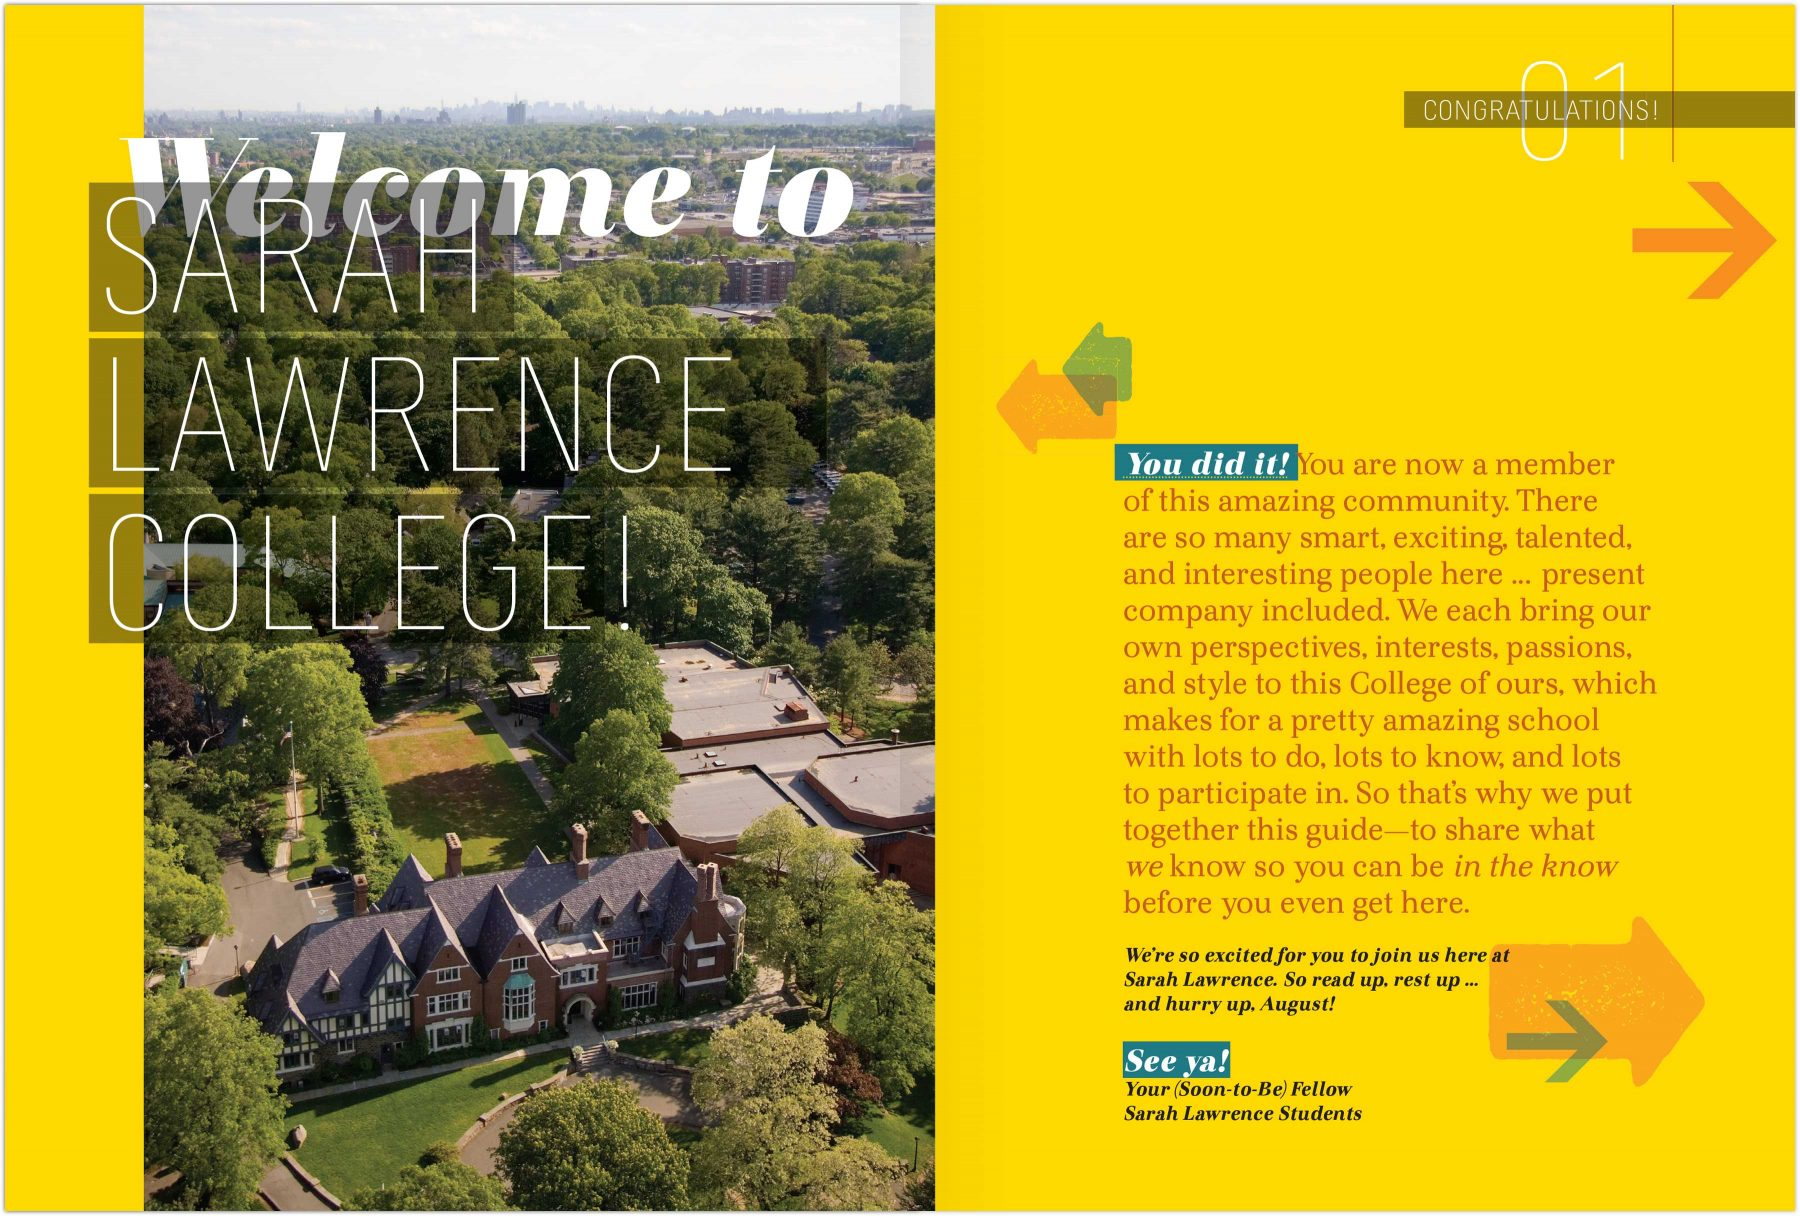 Student Guide Welcome to Sarah Lawrence College page